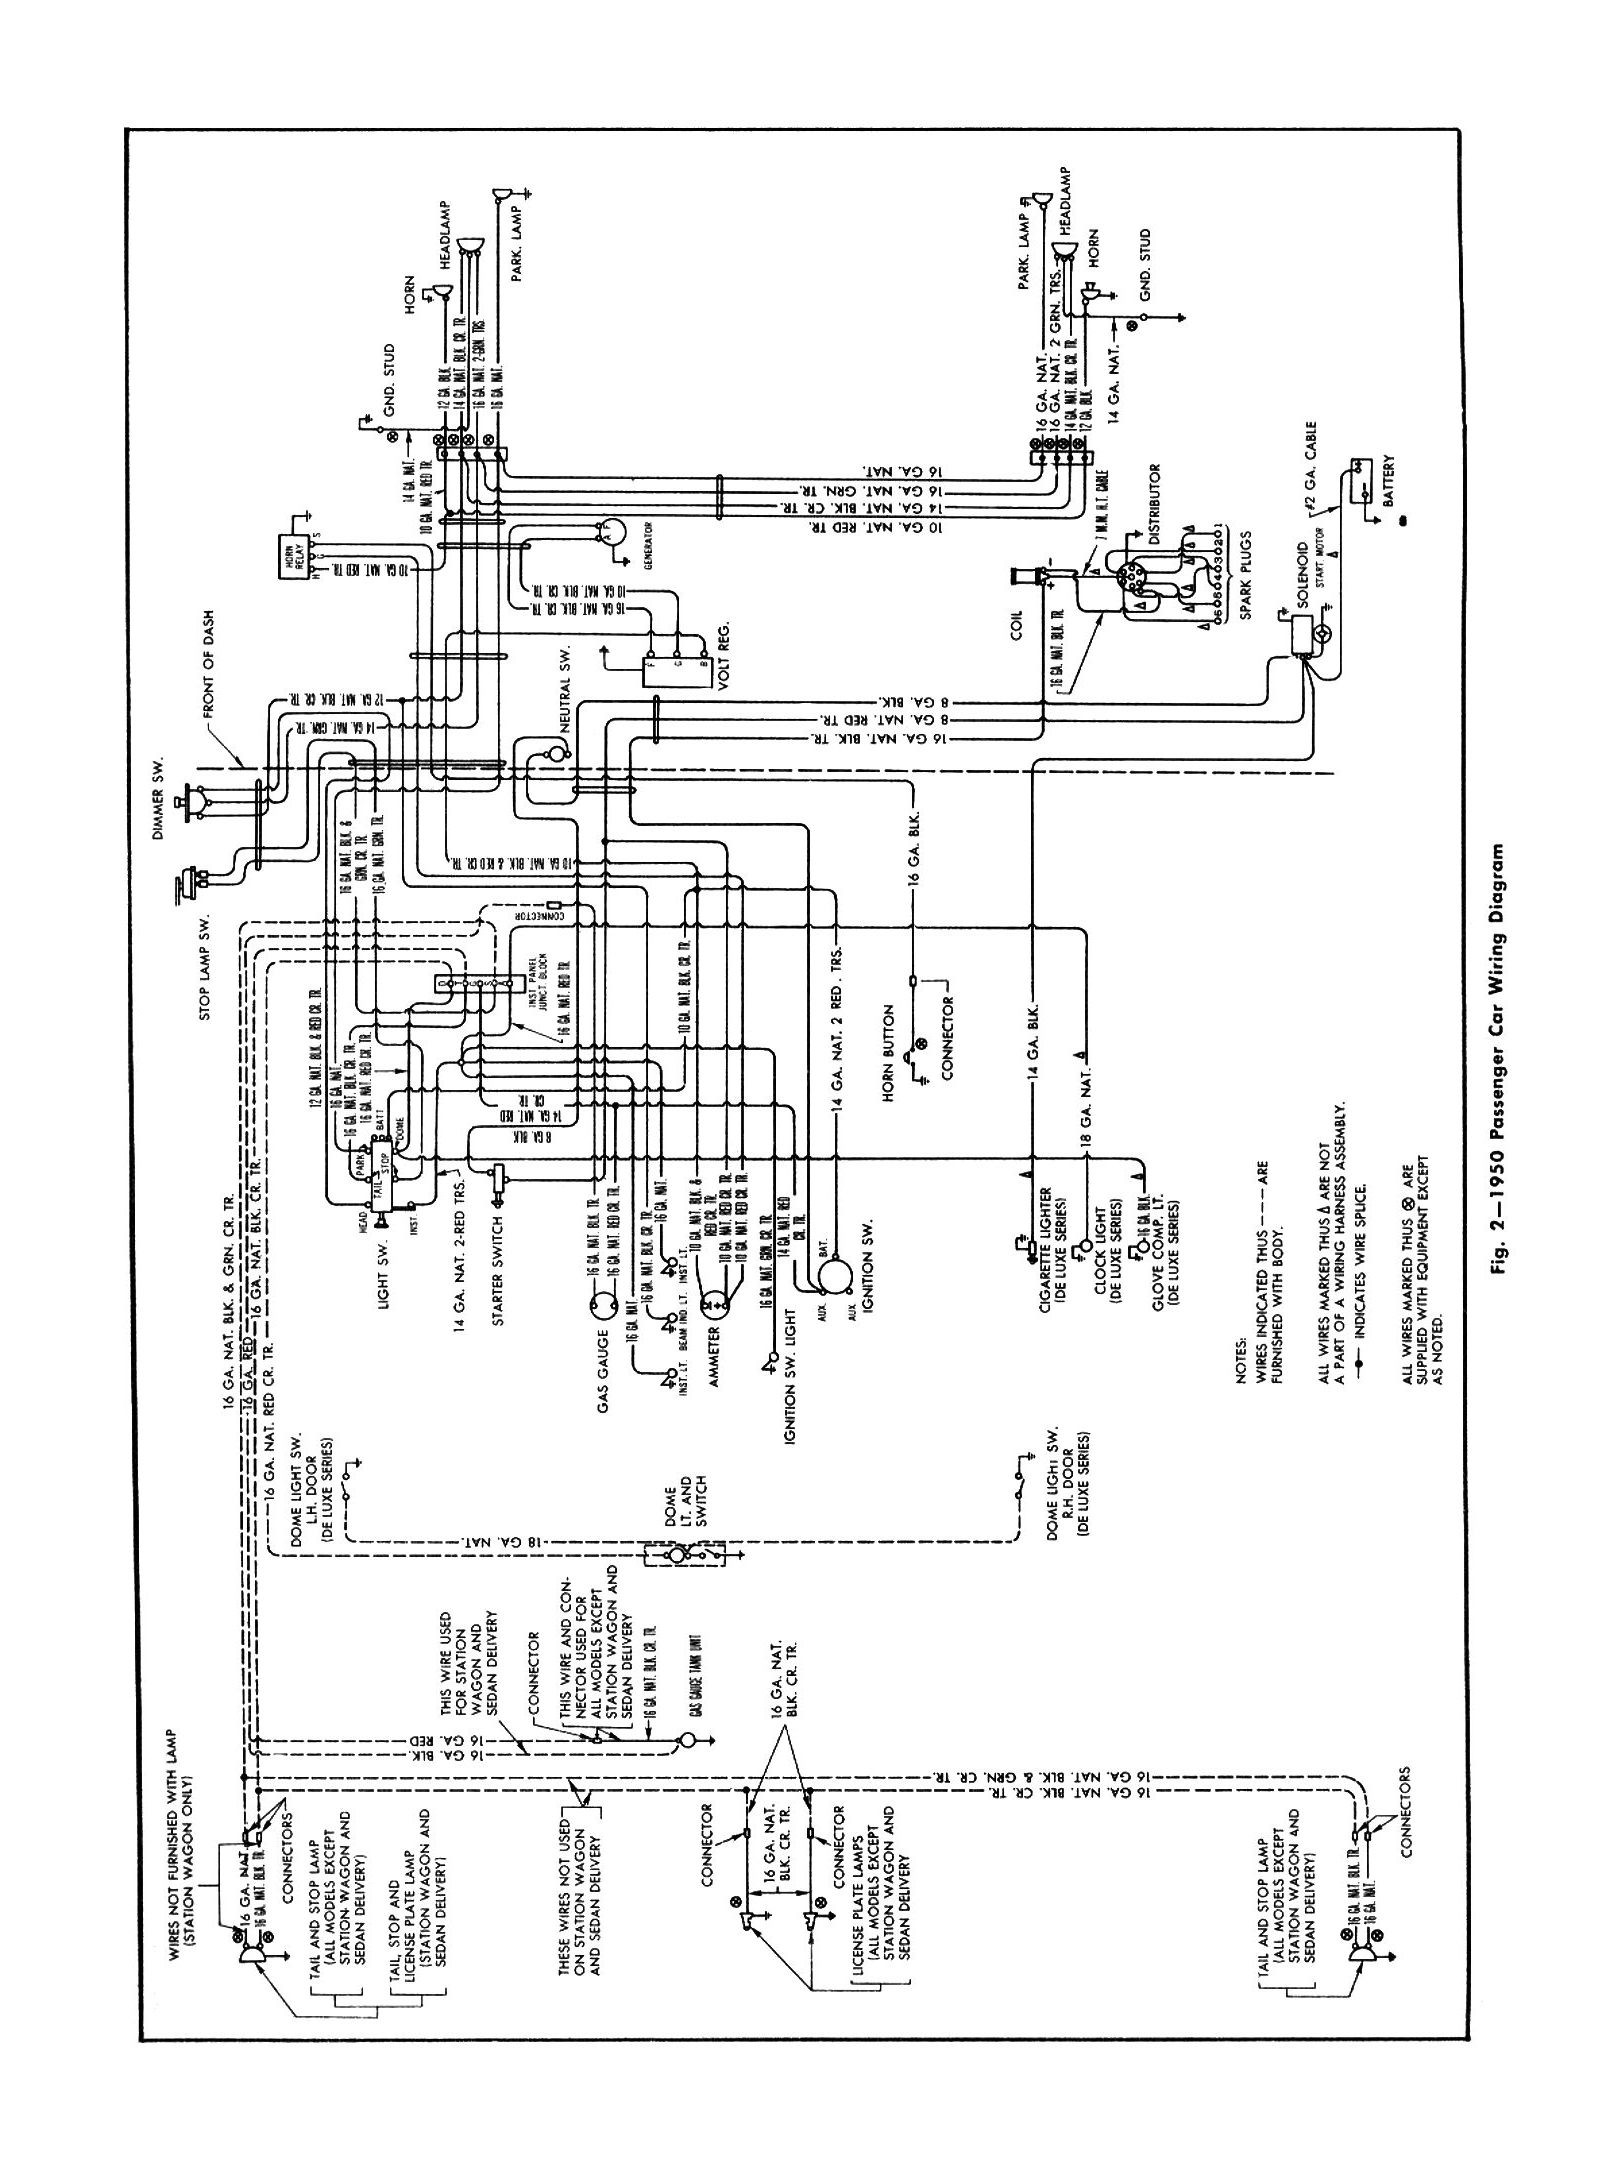 Chevy Wiring diagrams on ford instrument cluster wiring diagram, chevy truck instrument cluster assembly, 2003 chevy silverado instrument cluster wiring diagram, 2004 chevy silverado instrument cluster wiring diagram, chevy truck body diagram, audi instrument cluster wiring diagram,